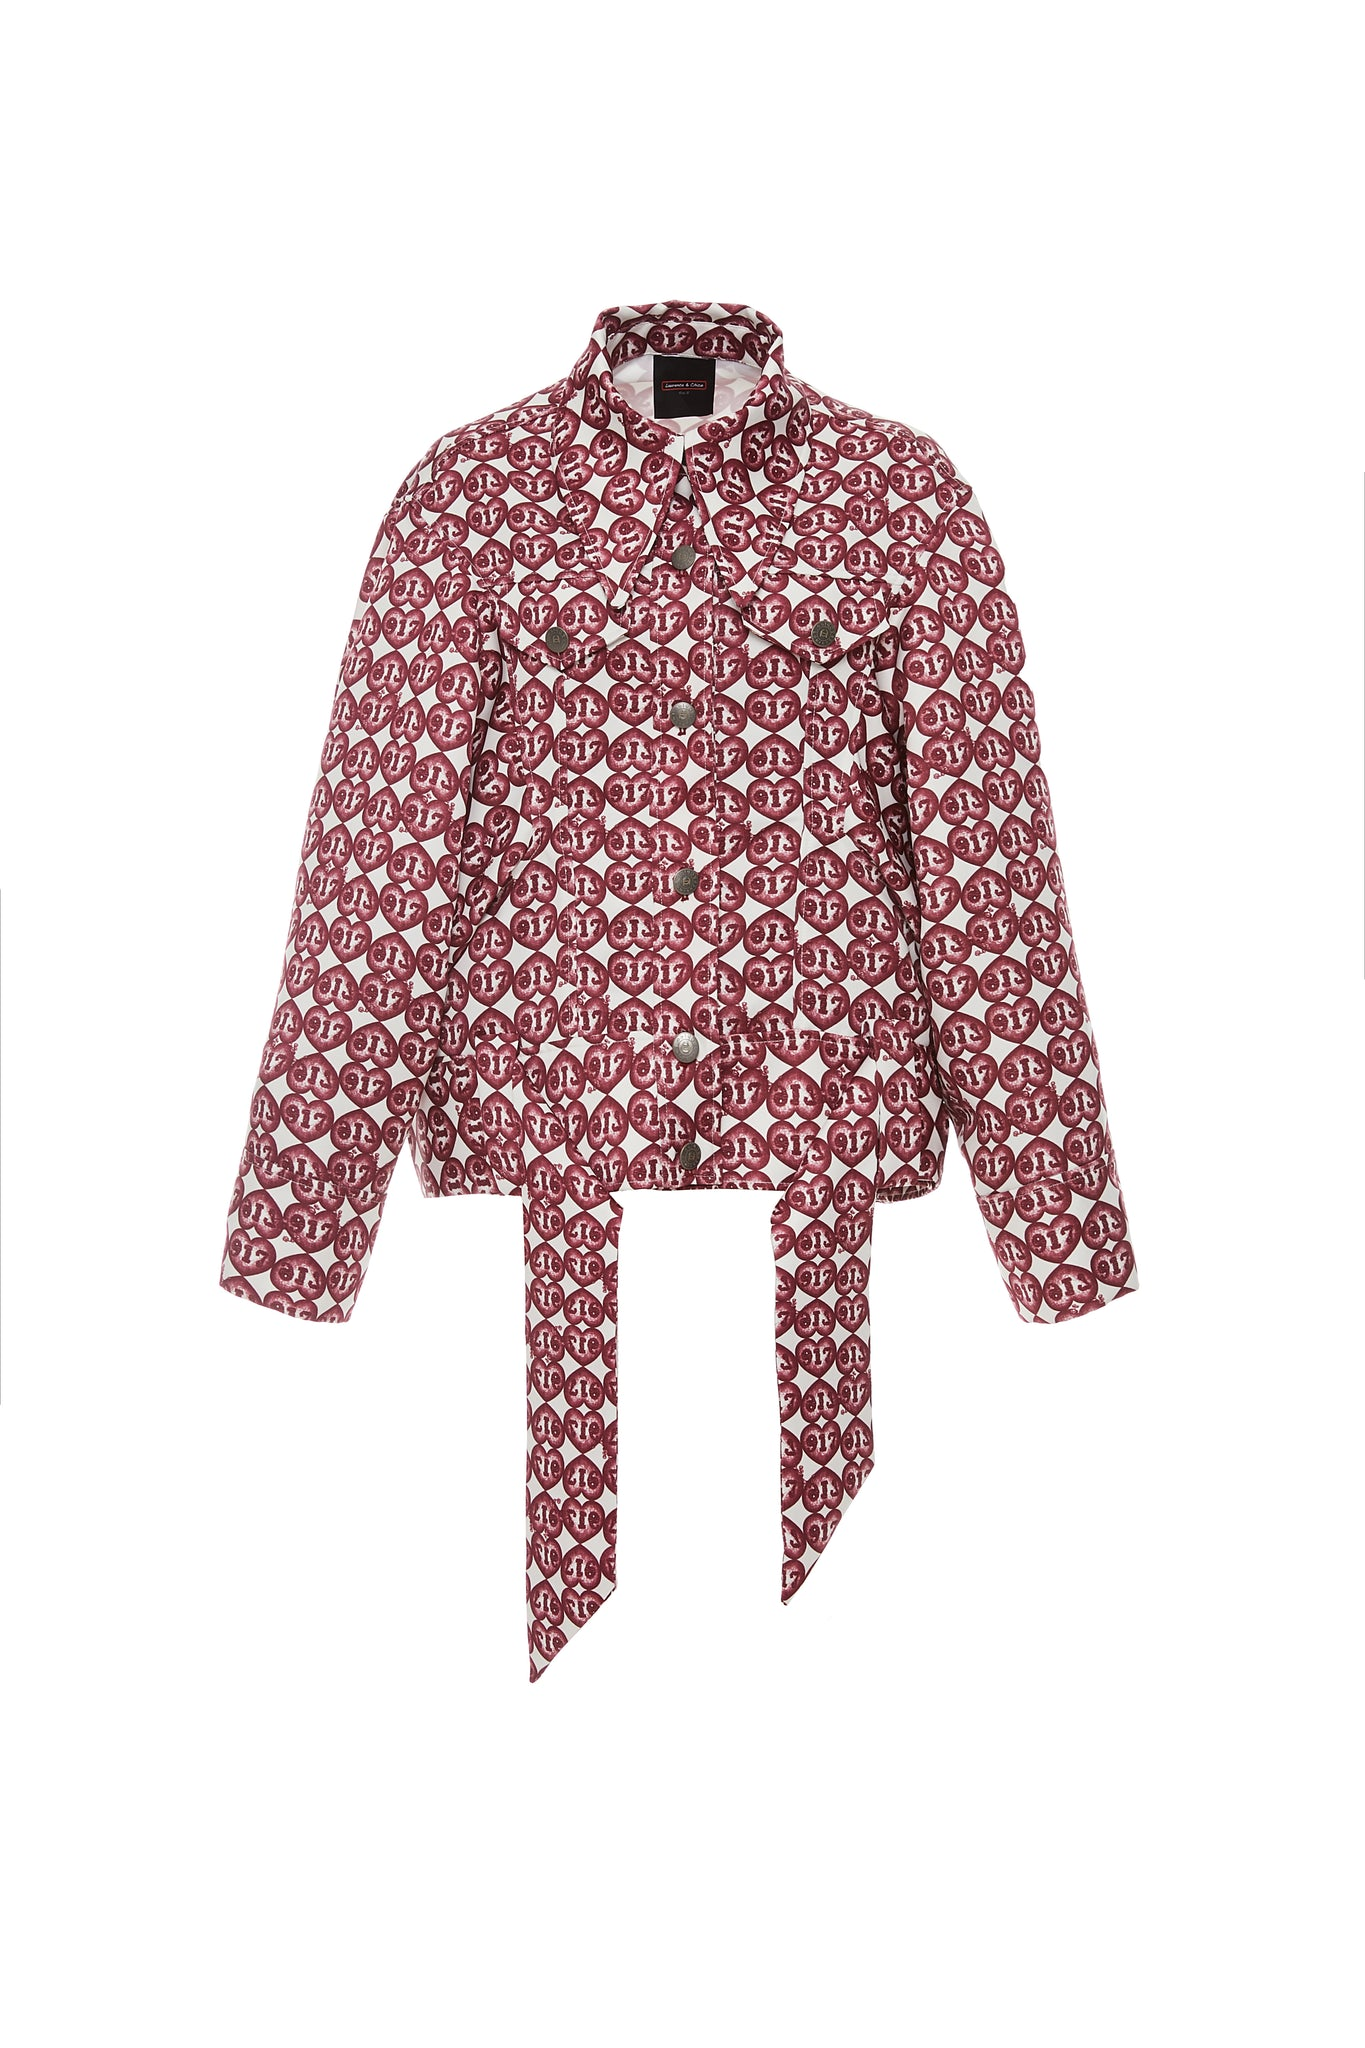 Oversized Jacket, 917 Heart Print, Red